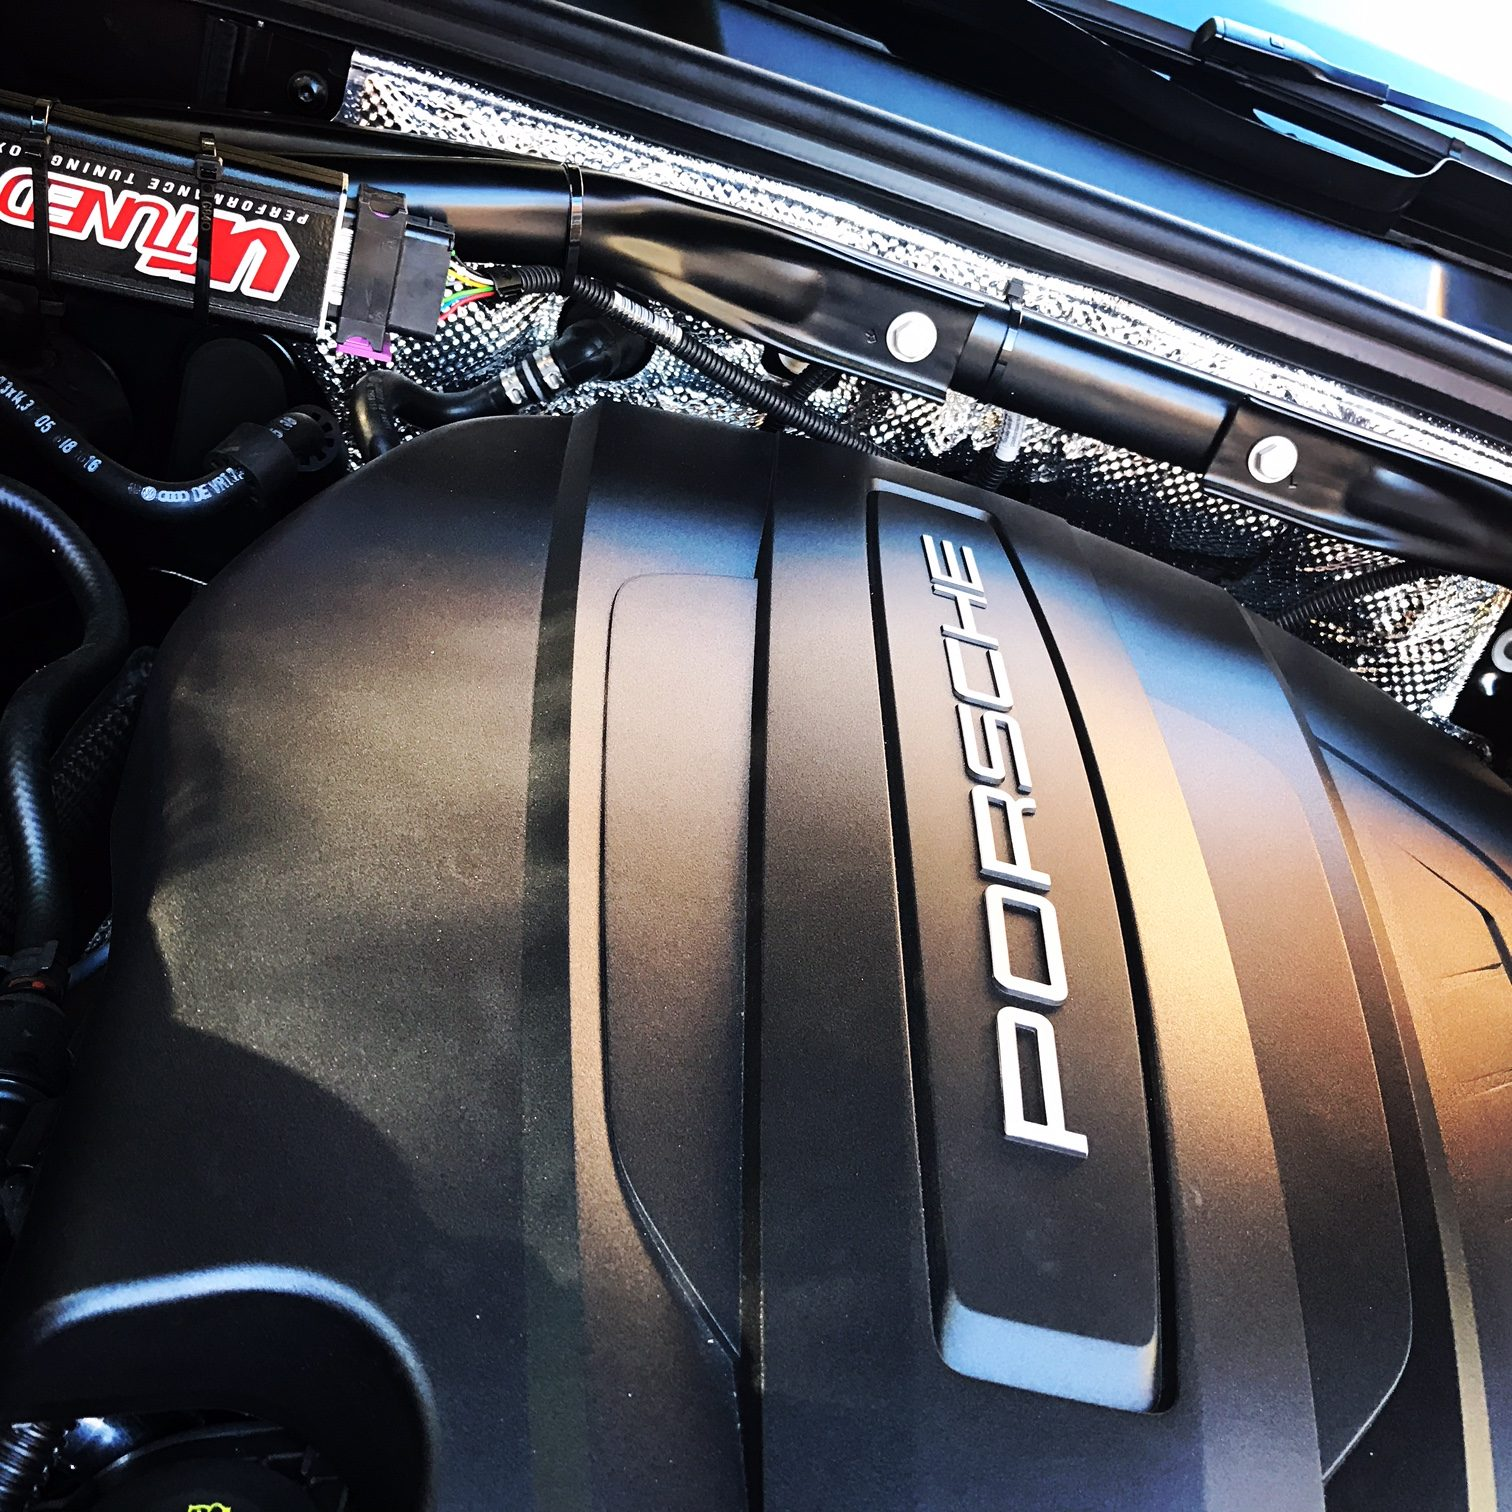 Boosted Performance V 2 0 Installed Tuned By Jms Racing: » Porsche Macan Base Tuning Box Kit